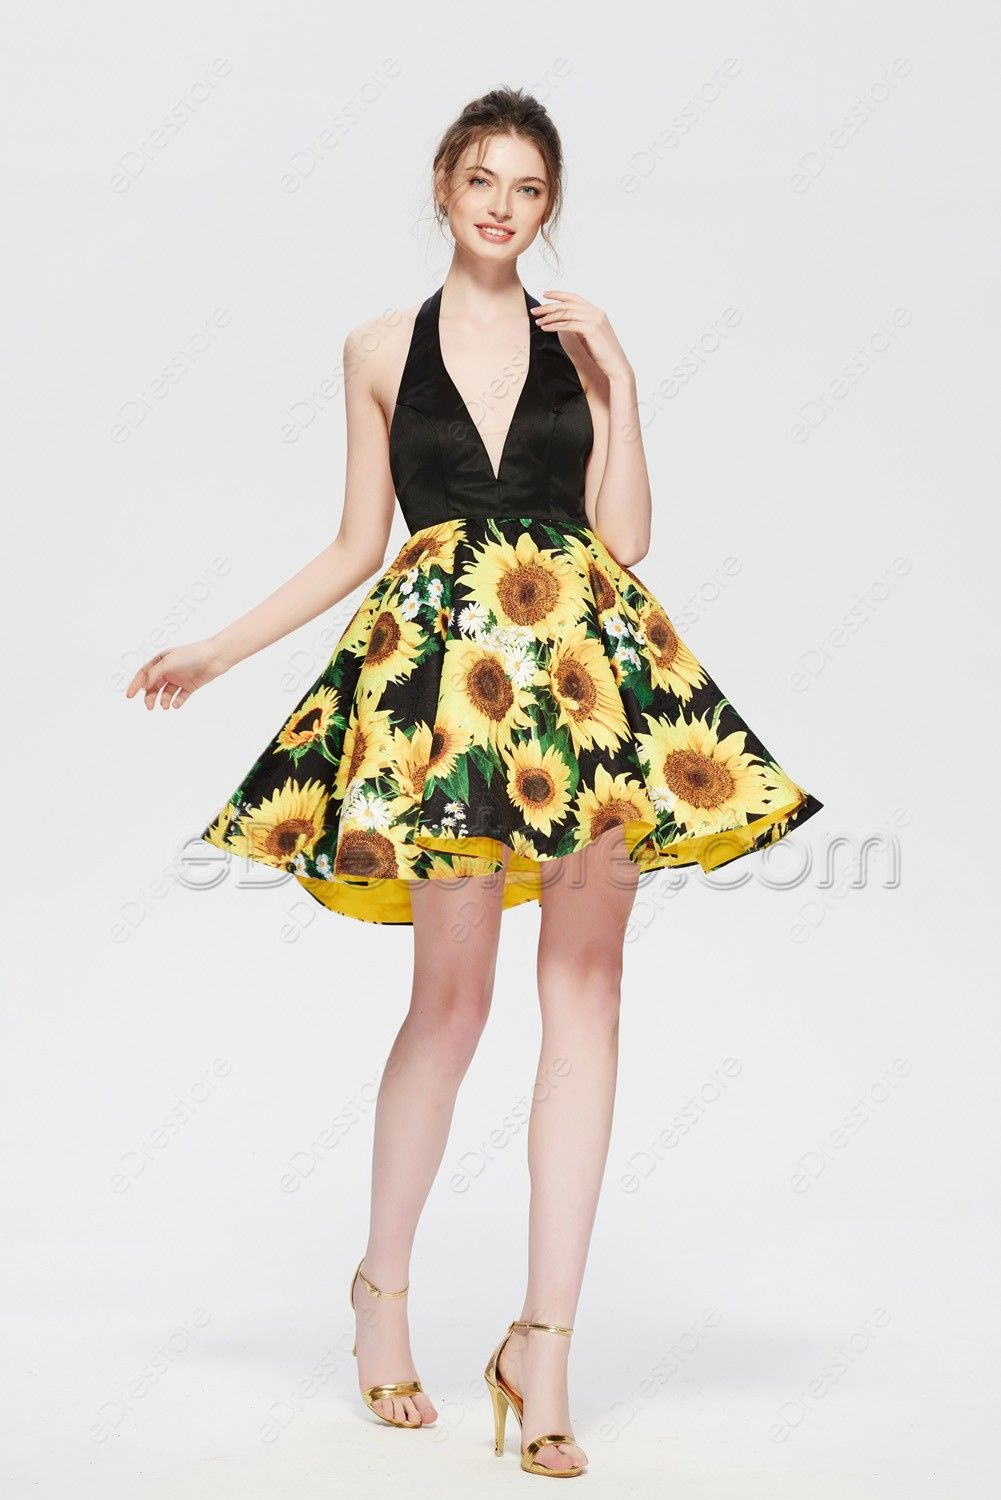 Floral Sunflower Yellow Backless Homecoming Dress Short Prom Dress Homecoming Dresses Dresses Homecoming Dresses Short [ 1500 x 1001 Pixel ]